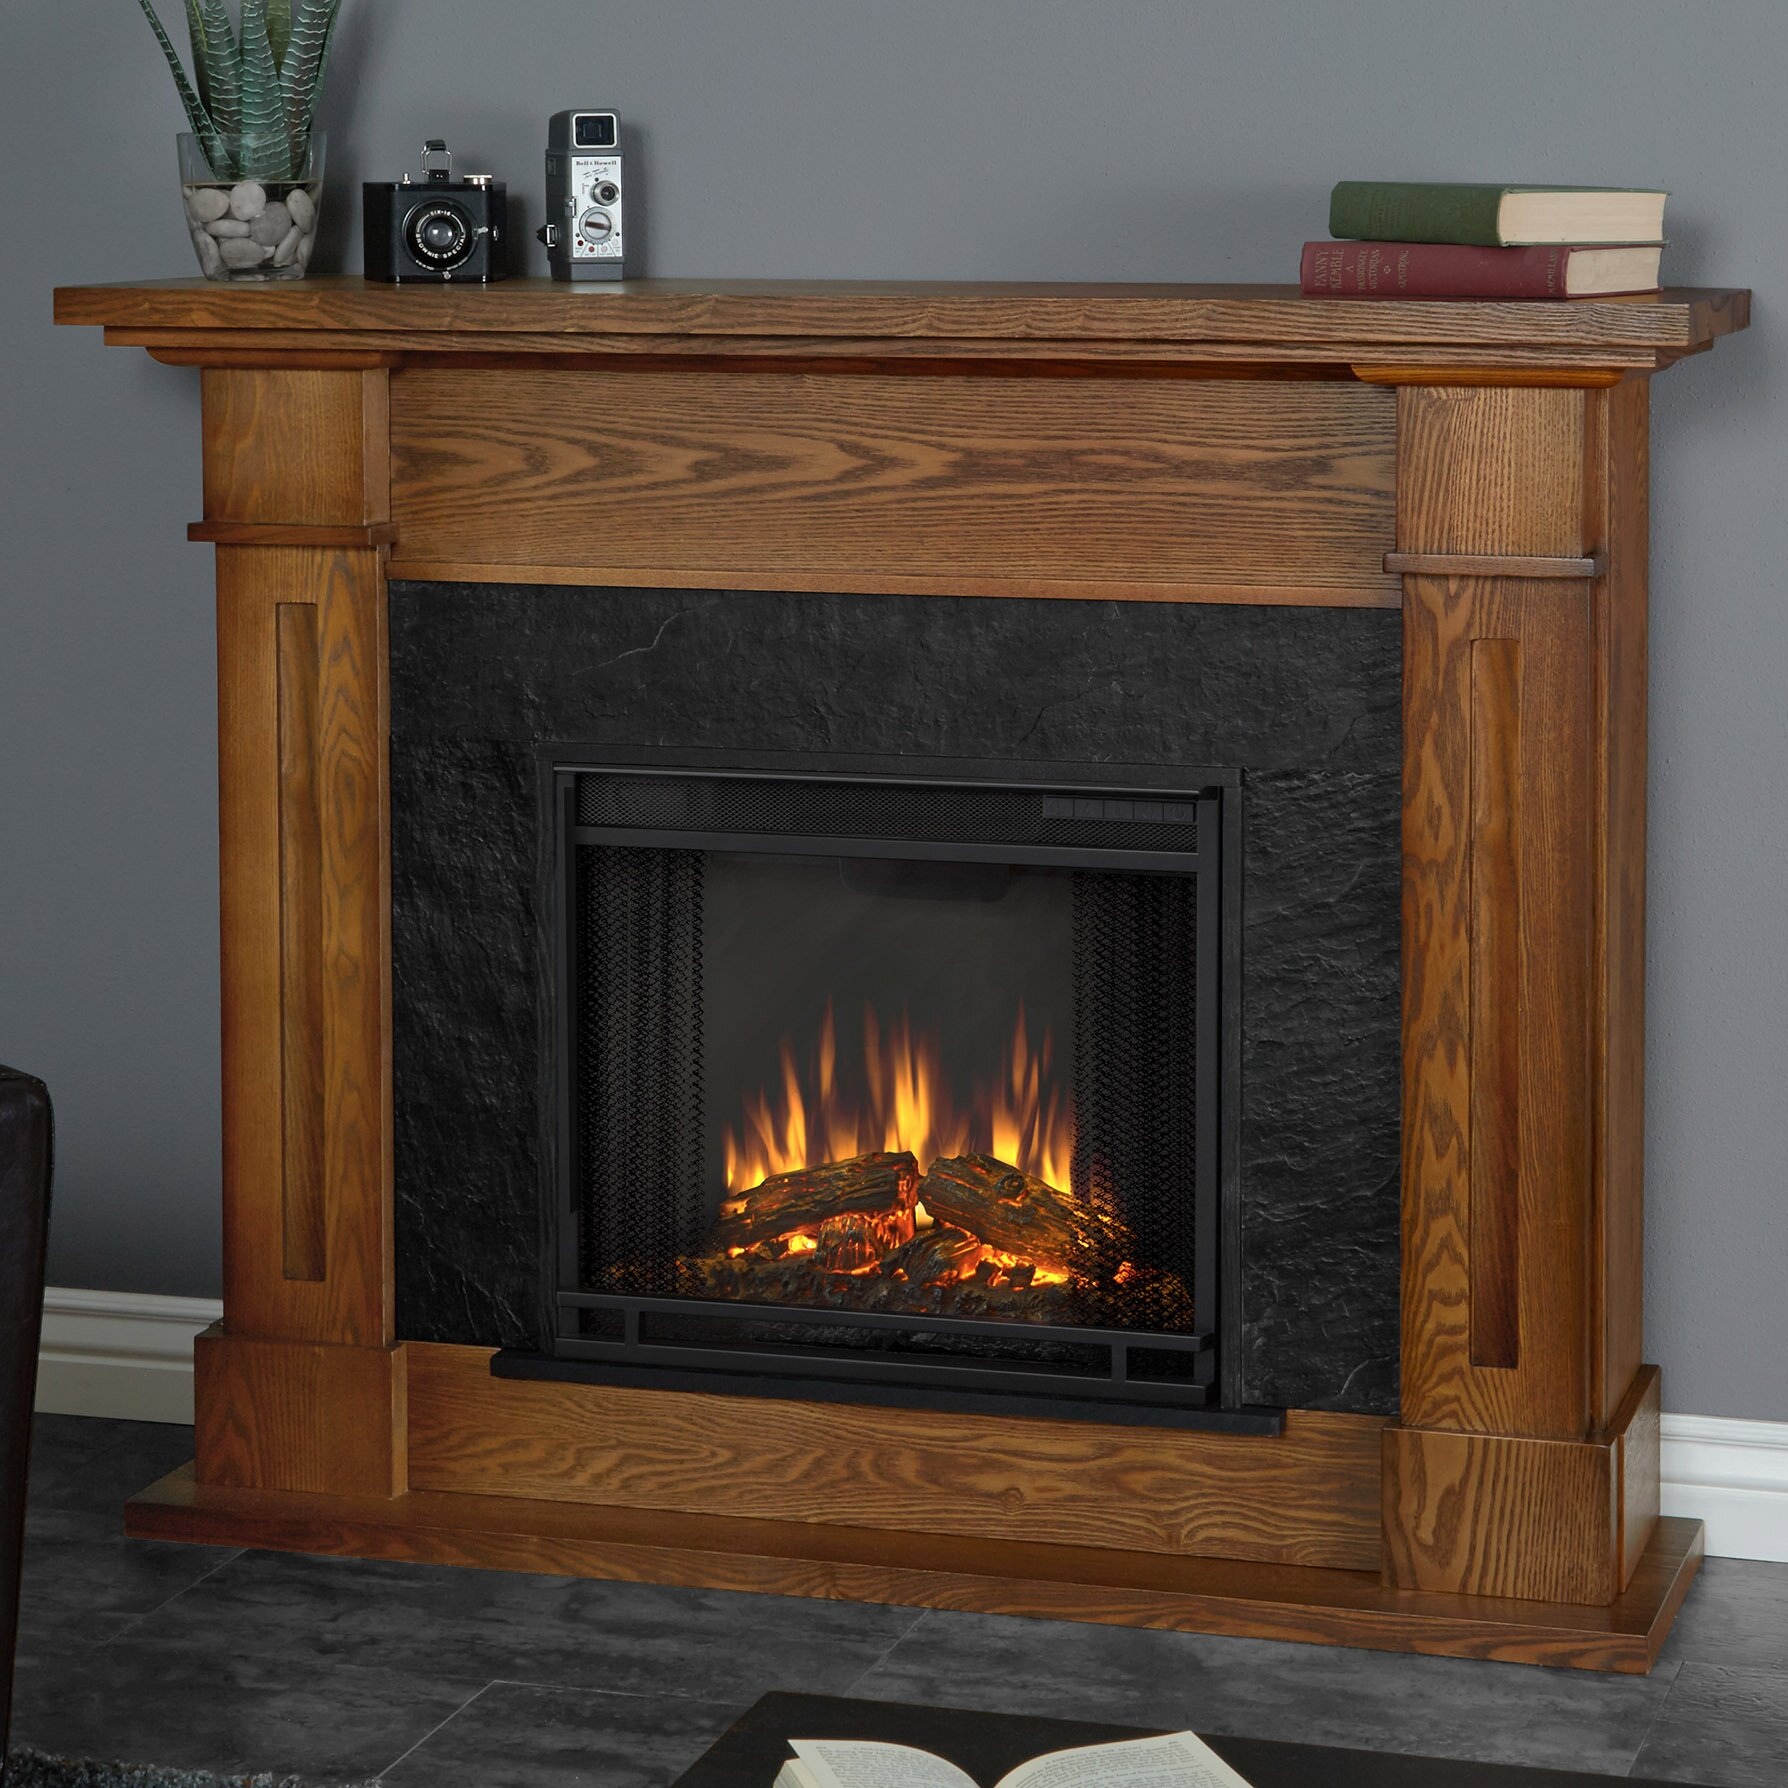 Country flame fireplace fireplace ideas gallery blog country flame fireplace insert eventshaper